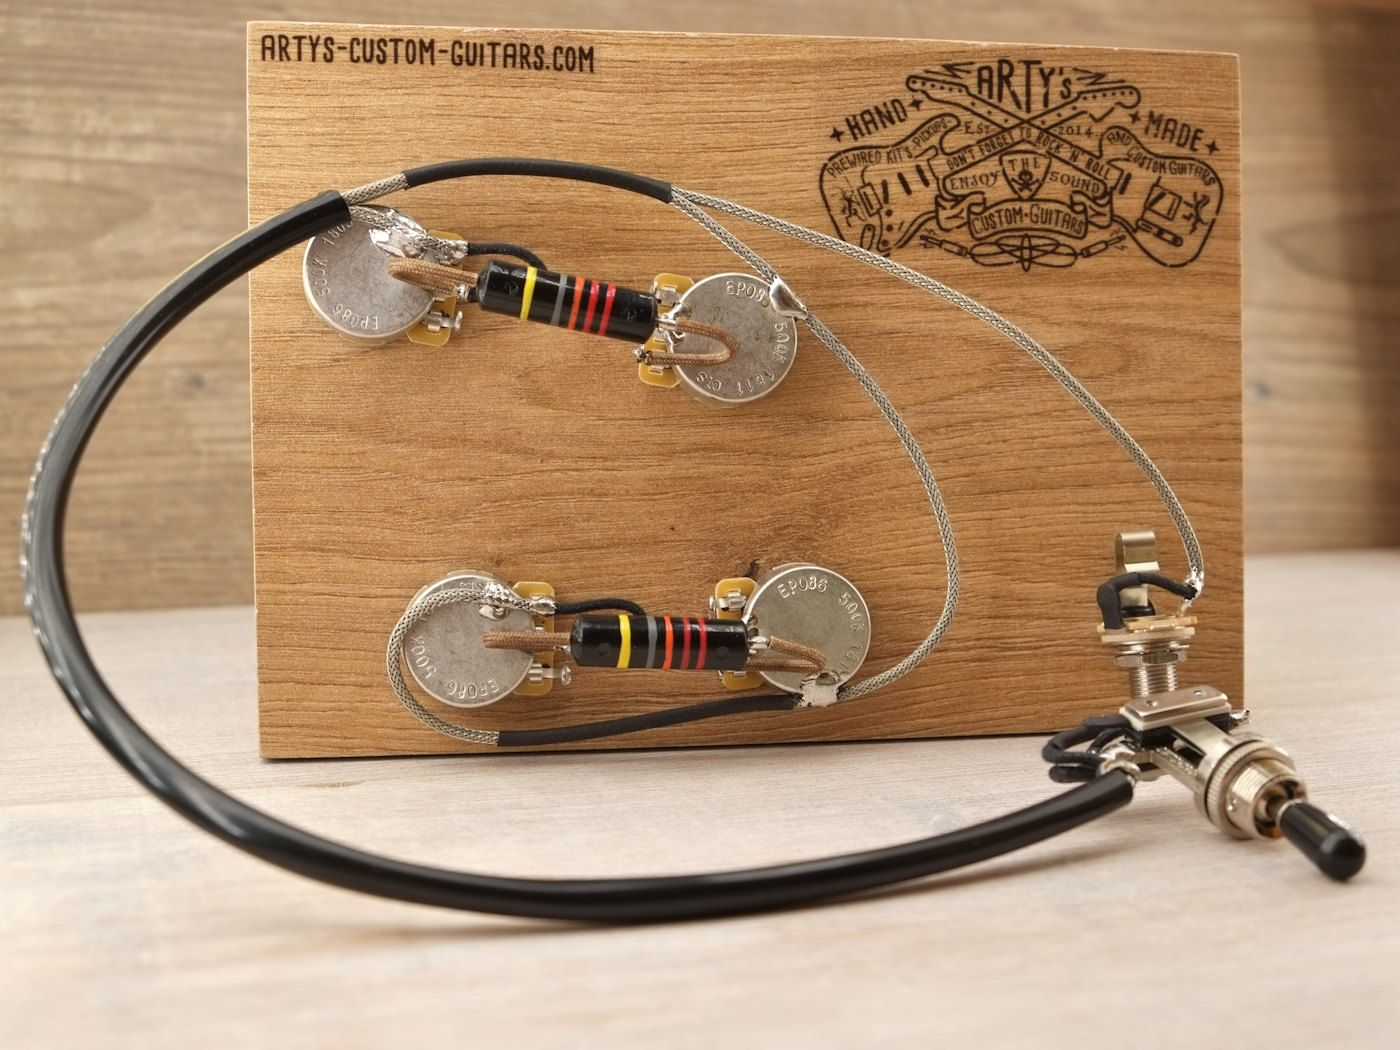 Es 175 295 50s Prewired Harness With Bumble Bee Or Black Gibson 335 Wiring Artys Custom Guitars Assembly Kit